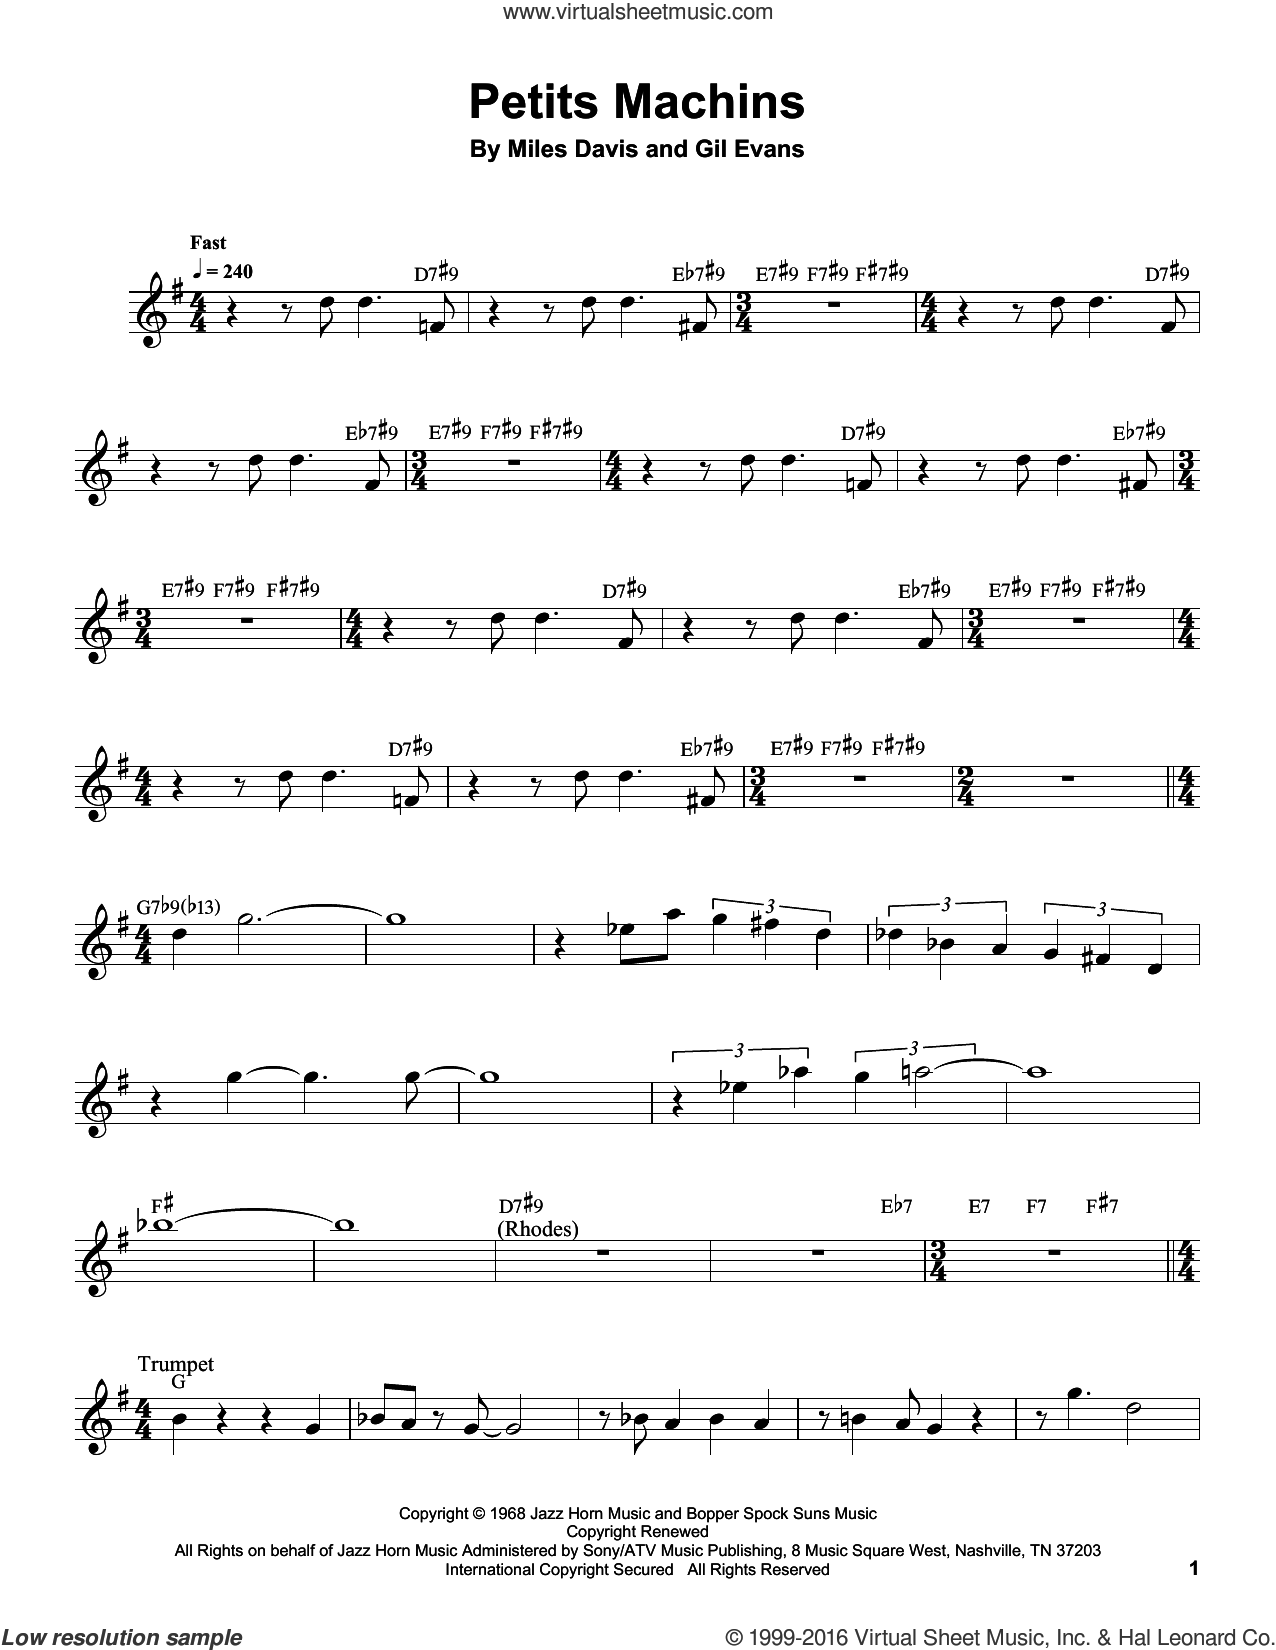 Petits Machins sheet music for trumpet solo (transcription) by Miles Davis and Gil Evans, intermediate trumpet (transcription)